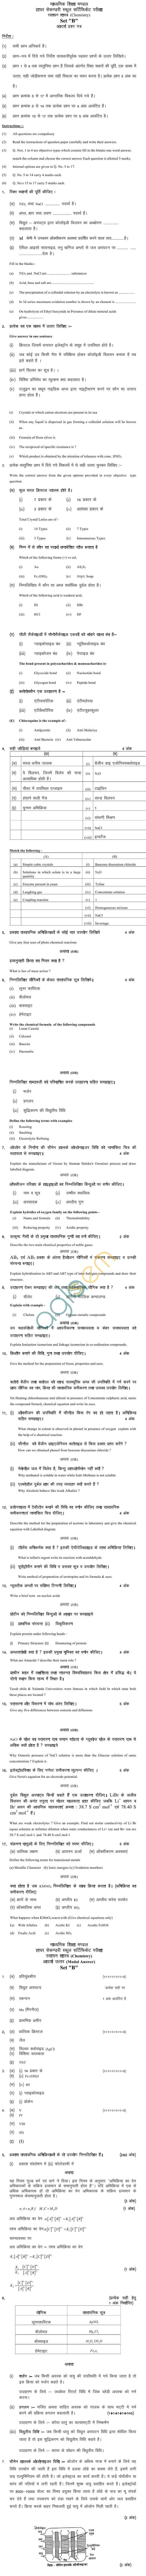 MP Board Class XII Chemistry Model Questions & Answers - Set 2